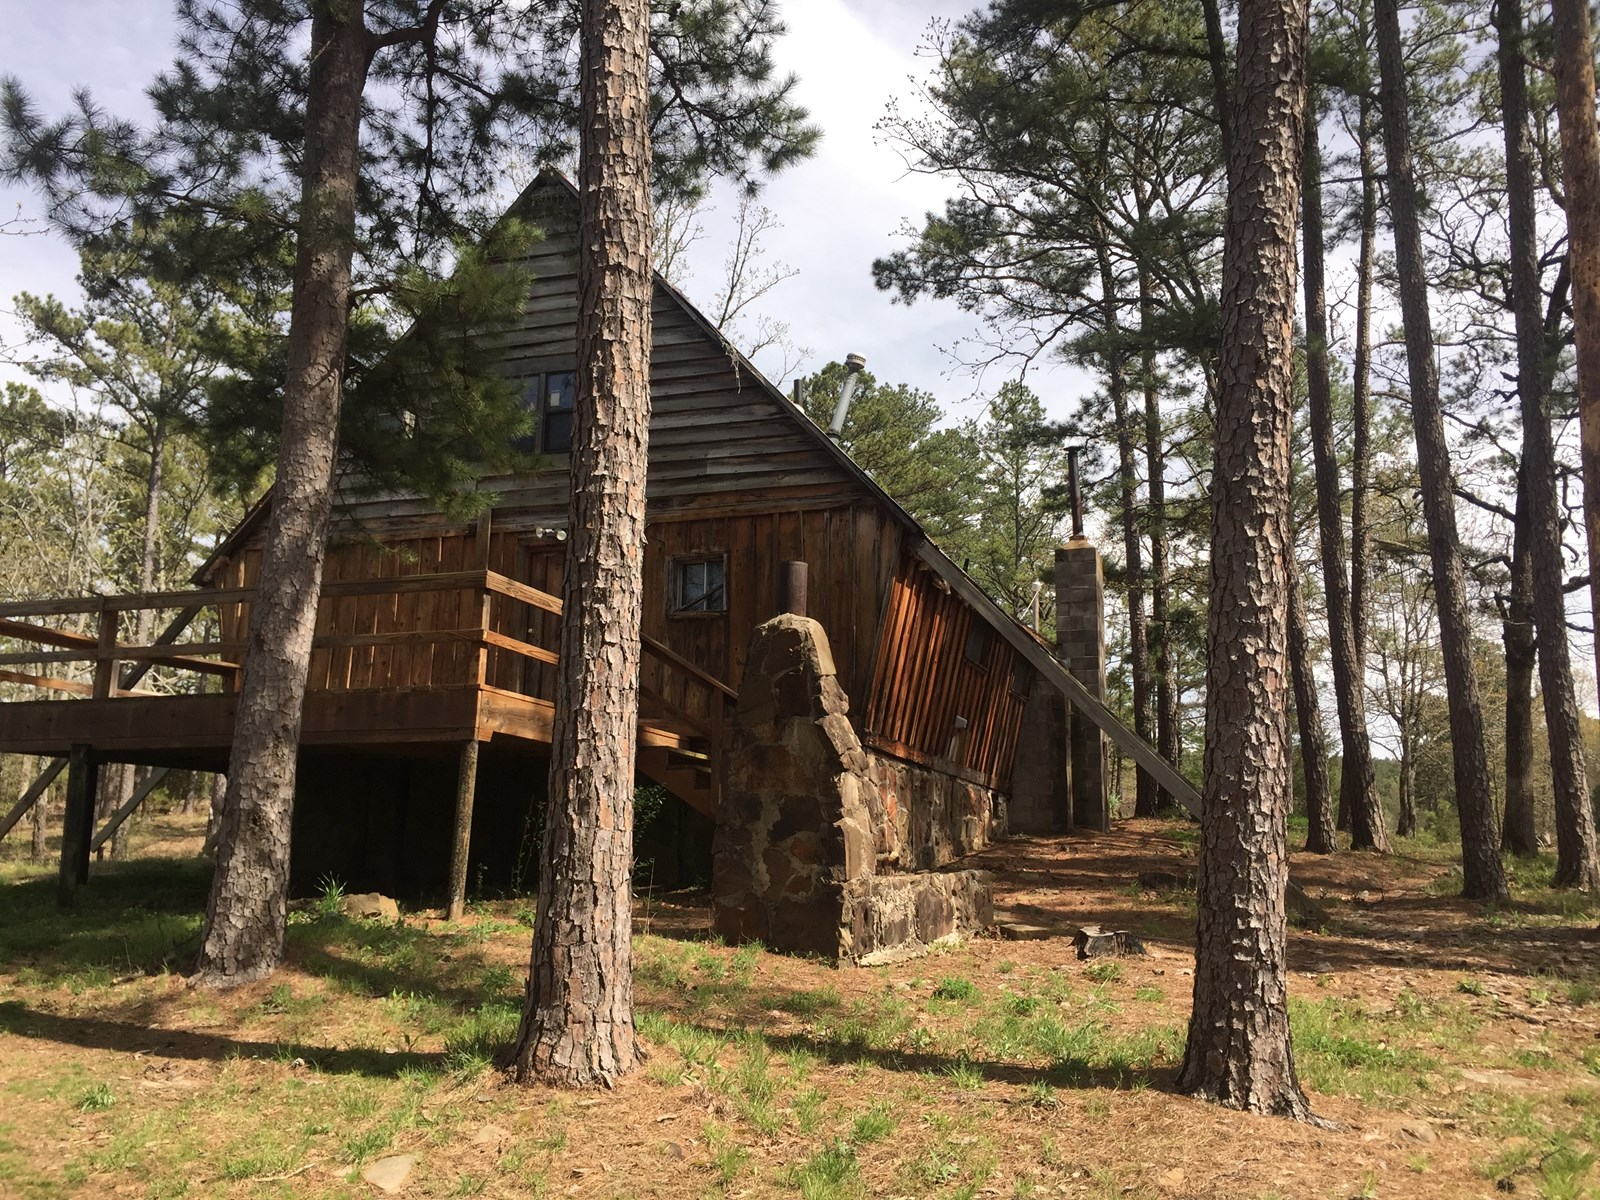 Southeastern Oklahoma Mountain Cabin for Sale Clayton,OK